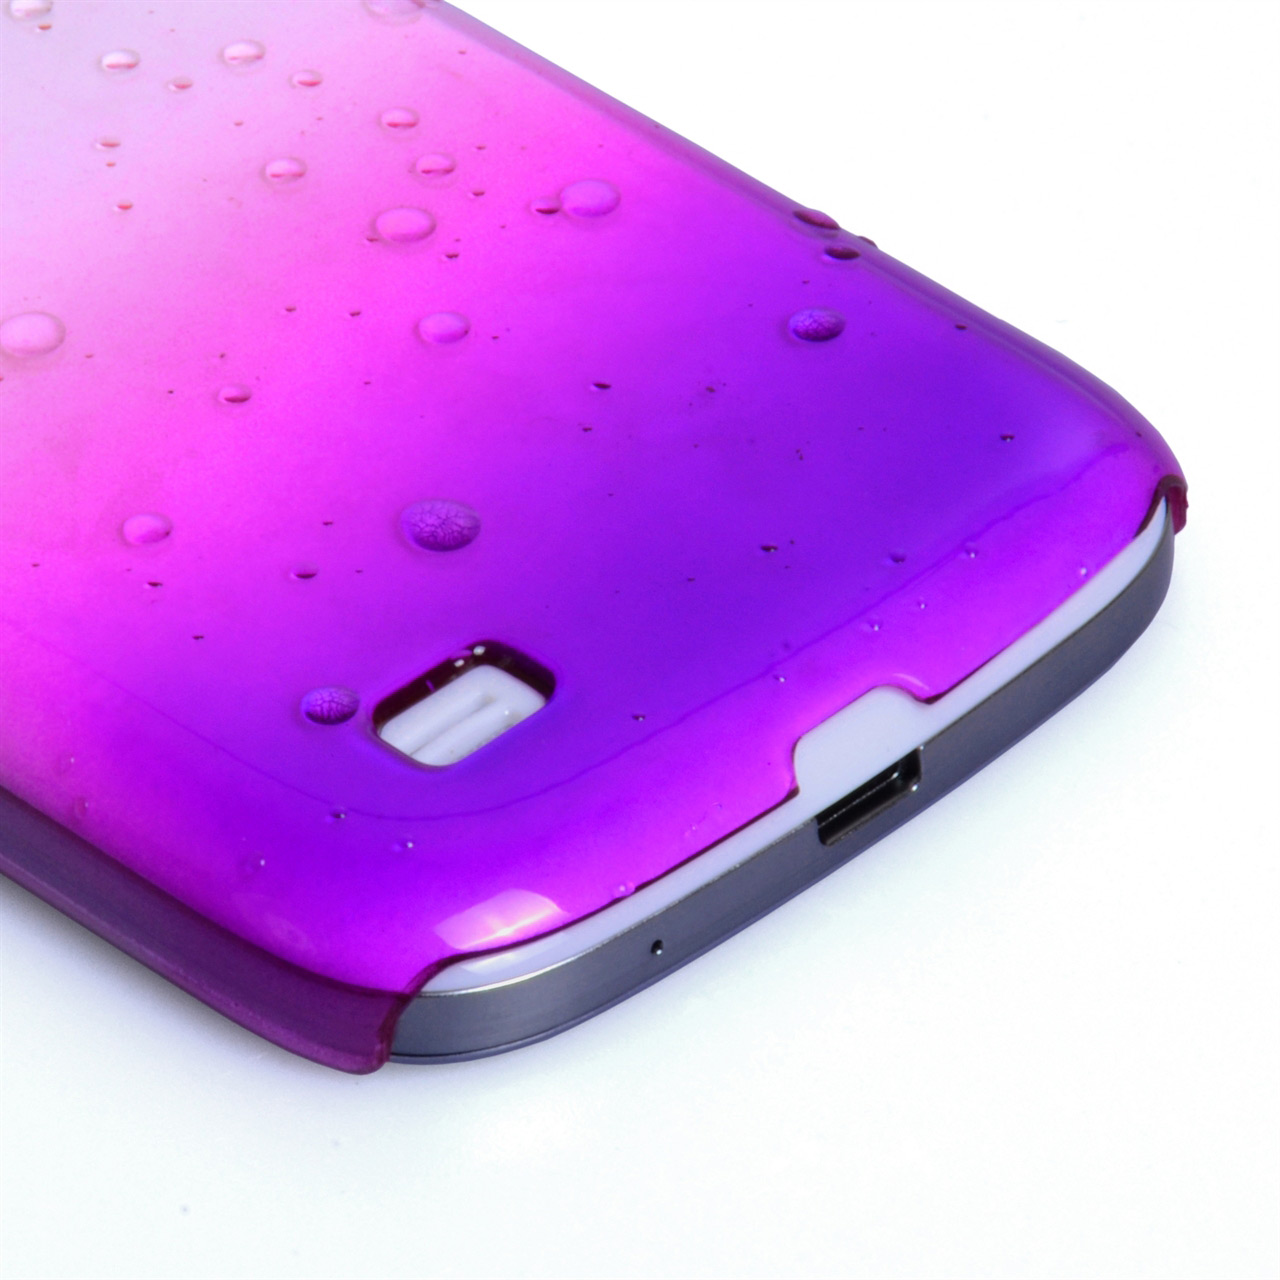 YouSave Accessories Samsung Galaxy S4 Mini Purple Raindrop Hard Case